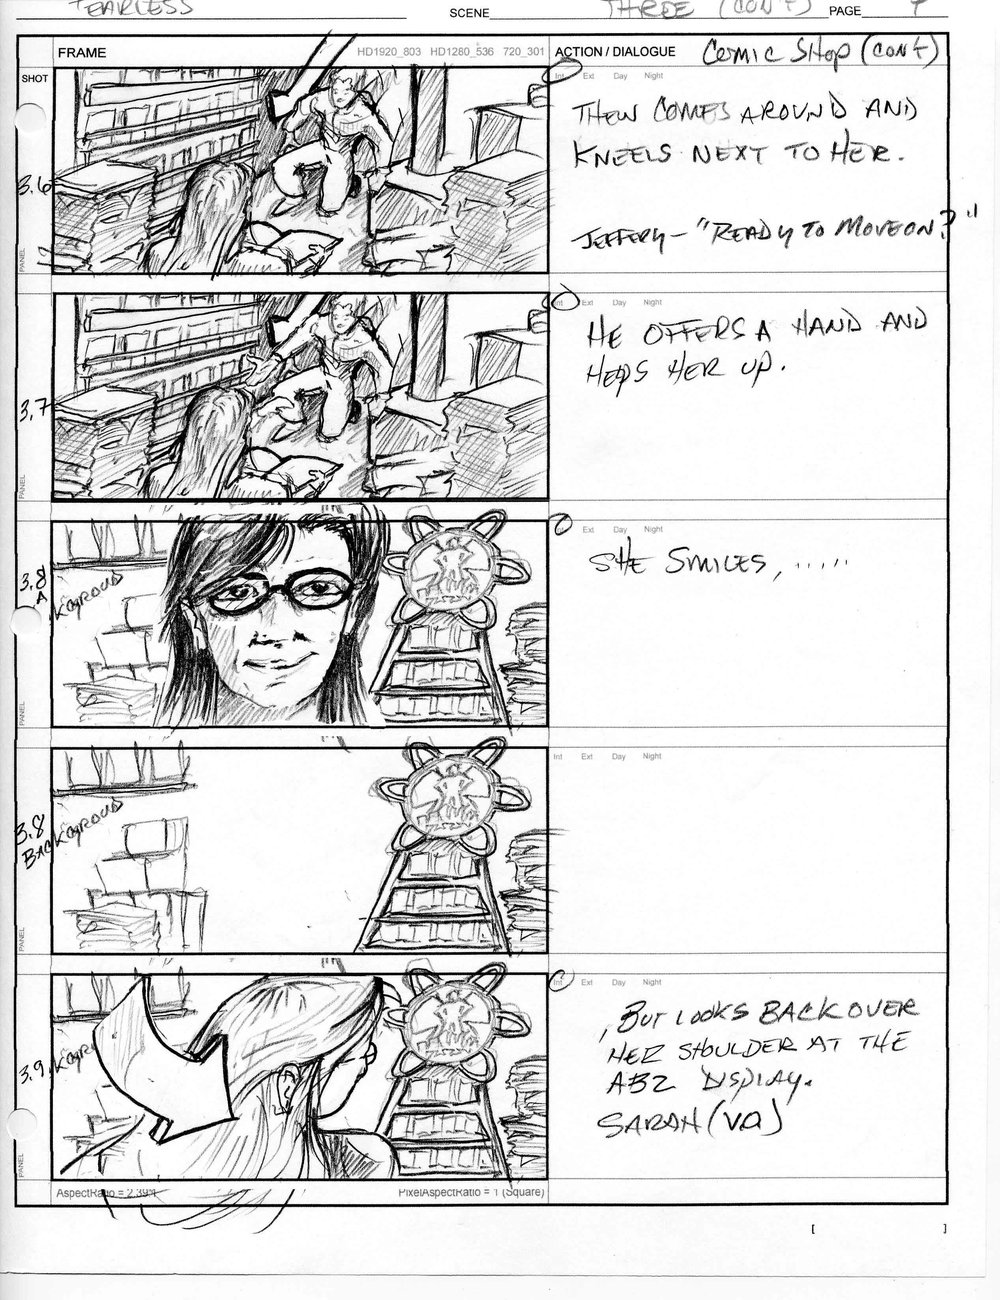 Fearless Episode Hunters - Storyboard sample C